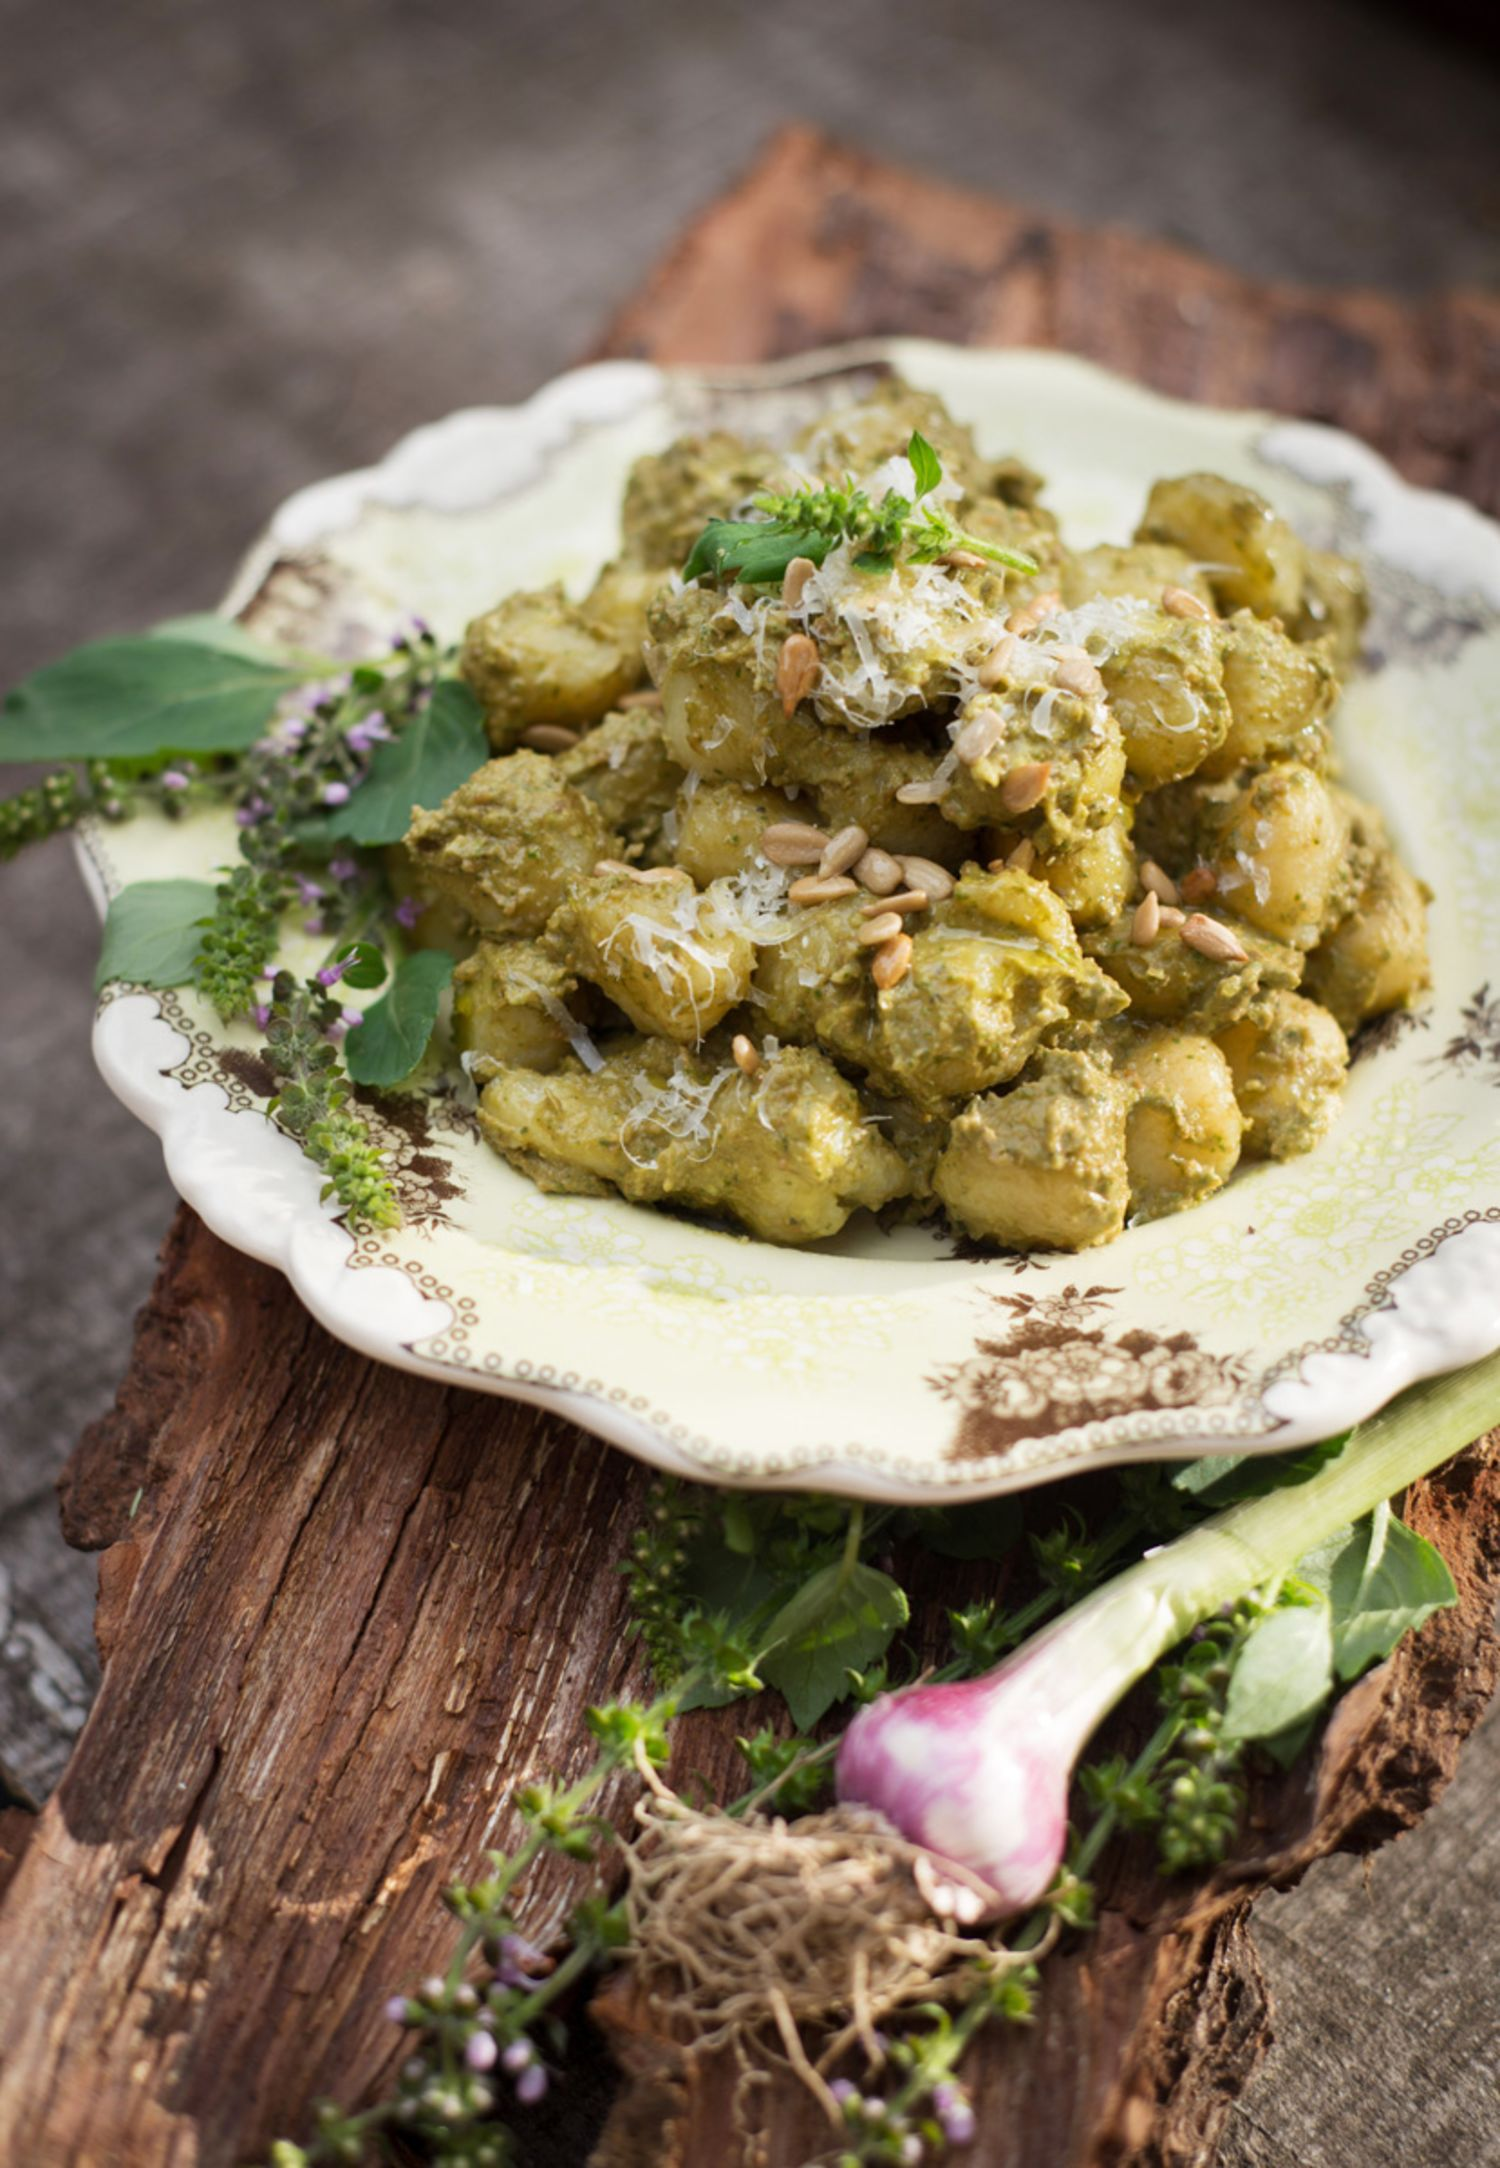 Recipe: Creamy Green Garlic & Avocado Pesto Over Gnocchi